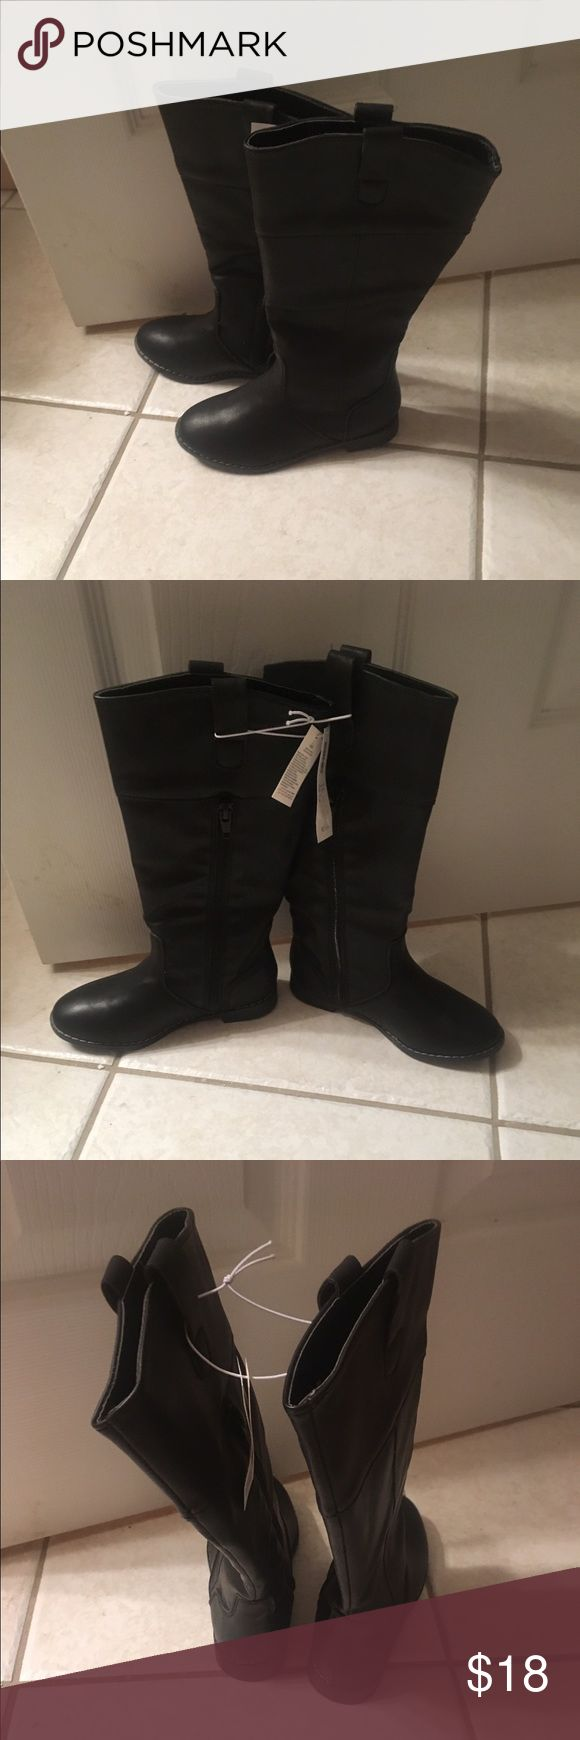 Toddler Girls Old Navy Knee-Hi Black Boots-Size 11 New with tag!  Girls Old Navy Toddler Black Knee-Hi Boots!  Cute with leggings!  Perfect for your little mini-me!  Smoke Free Home!  Make REASONABLE OFFERS! Old Navy Shoes Boots